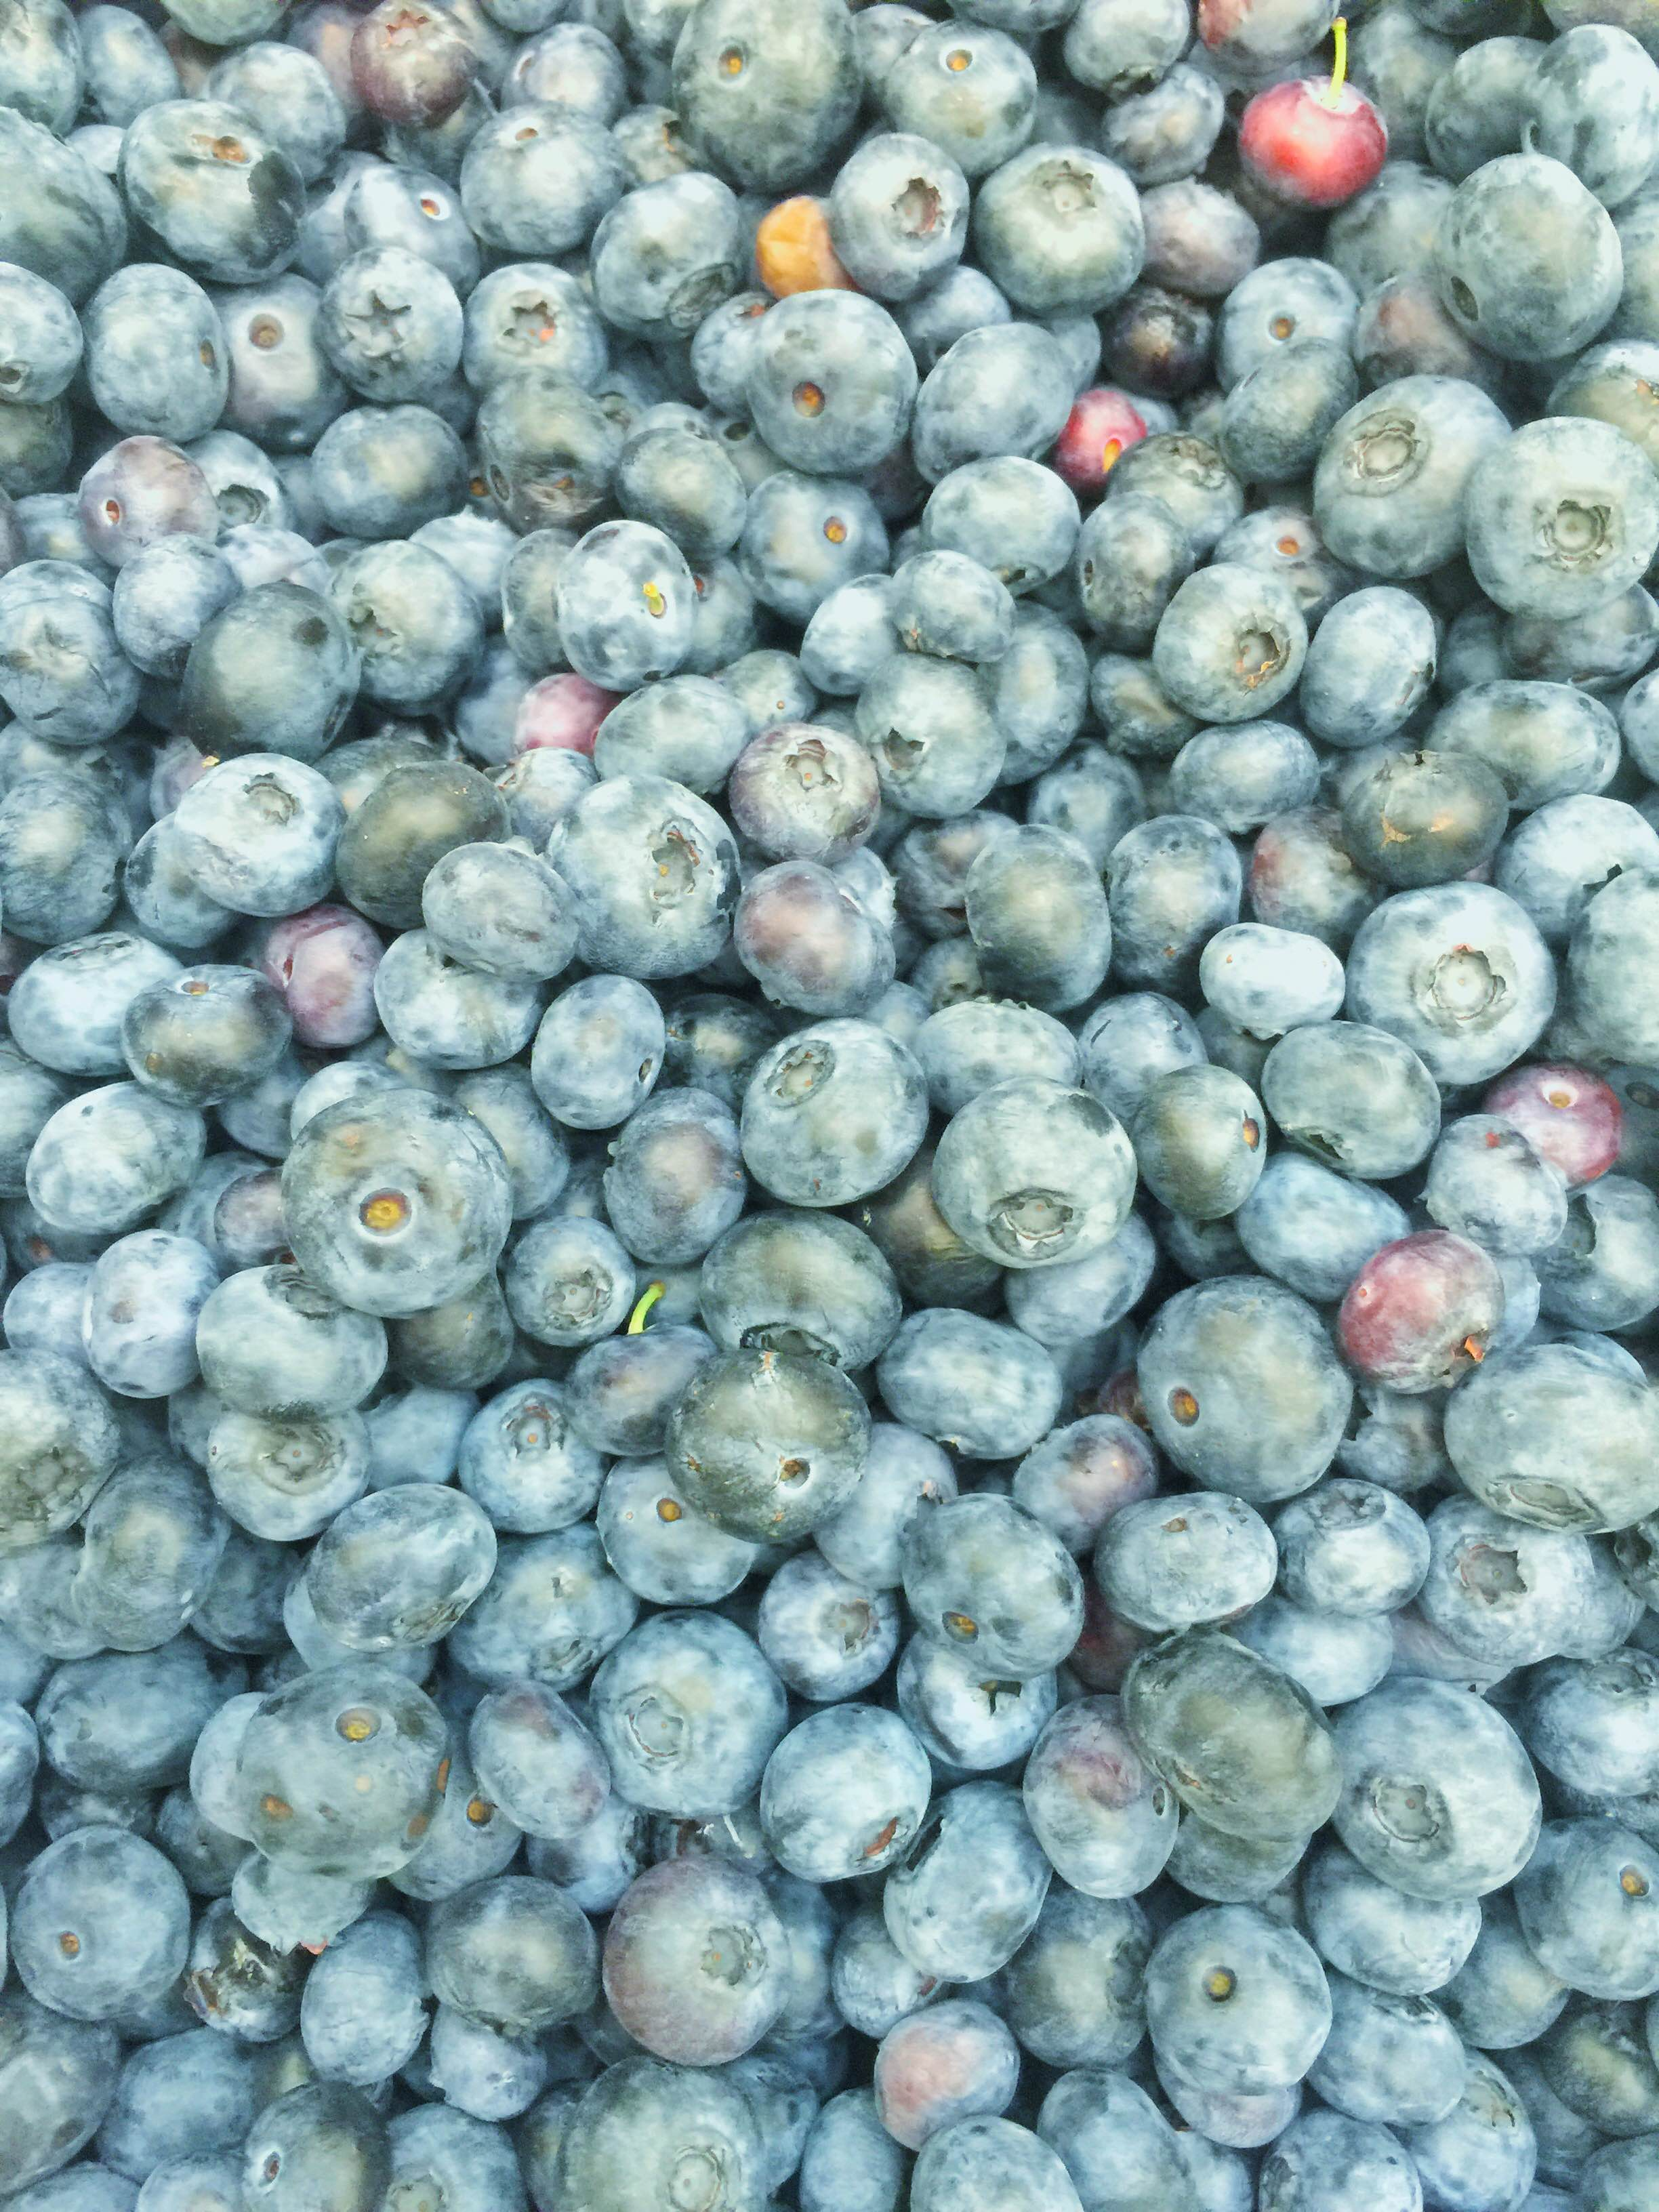 Summer Blueberries